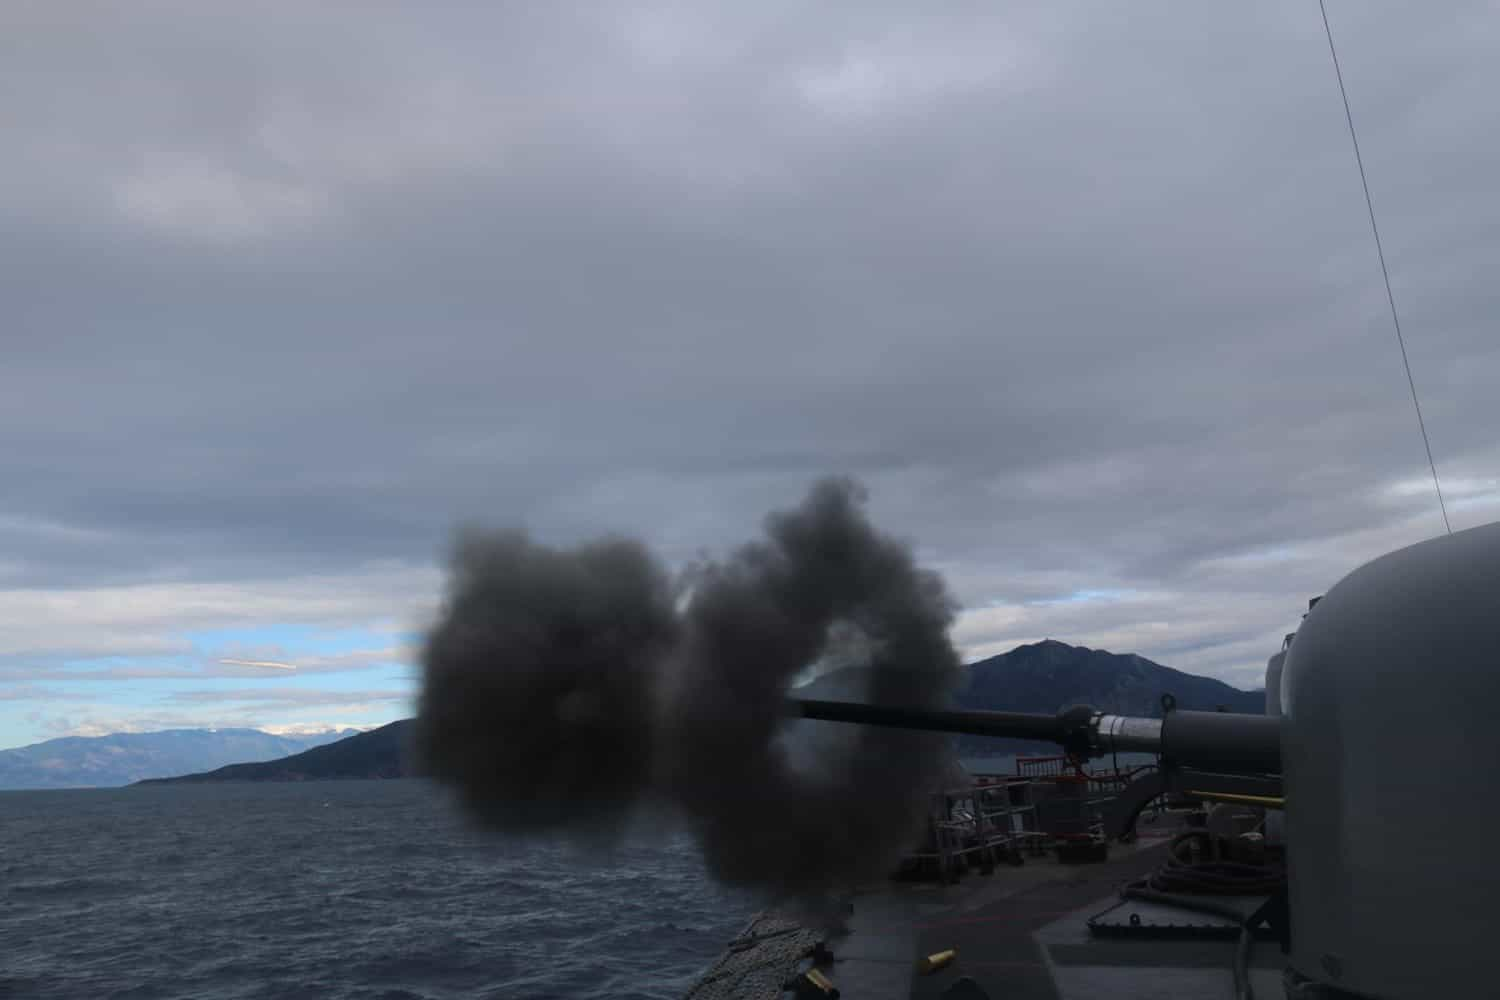 Image released by Turkey's so-called Defense Ministry. Turkish Navy